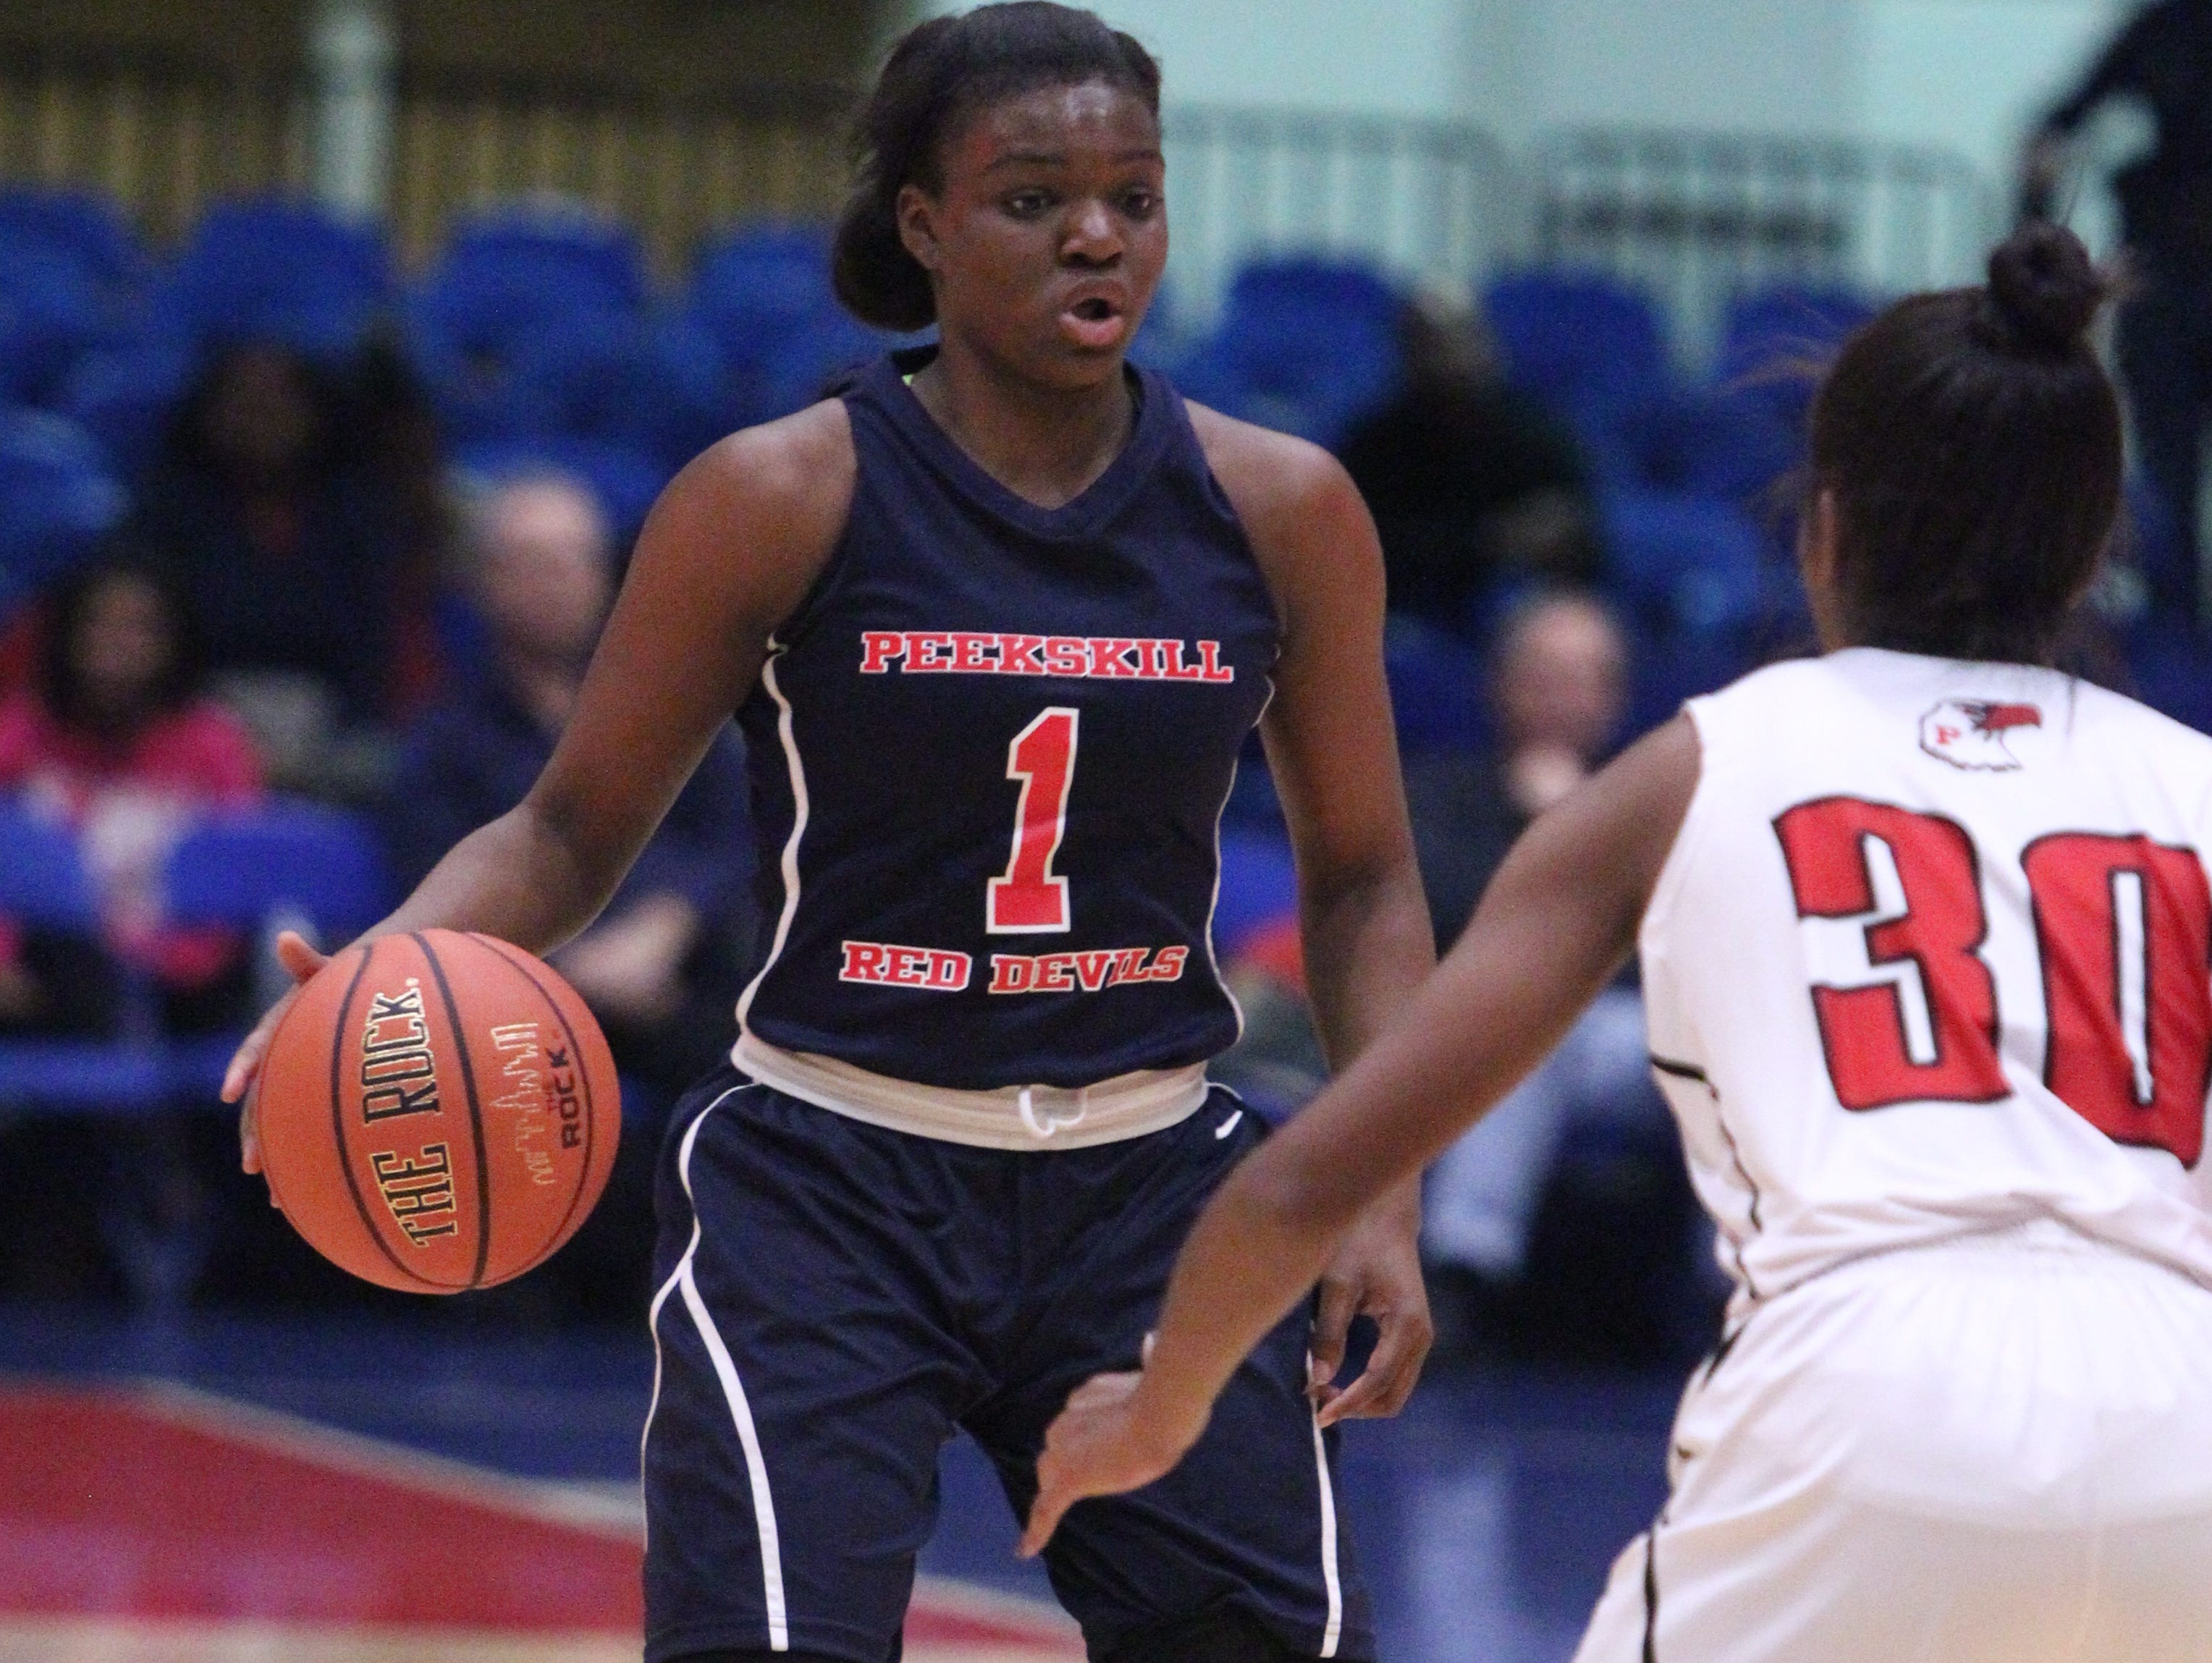 Peekskill beat Penfield 58-54 to win the Slam Dunk Tournament final at the Westchester County Center Dec. 29, 2015.